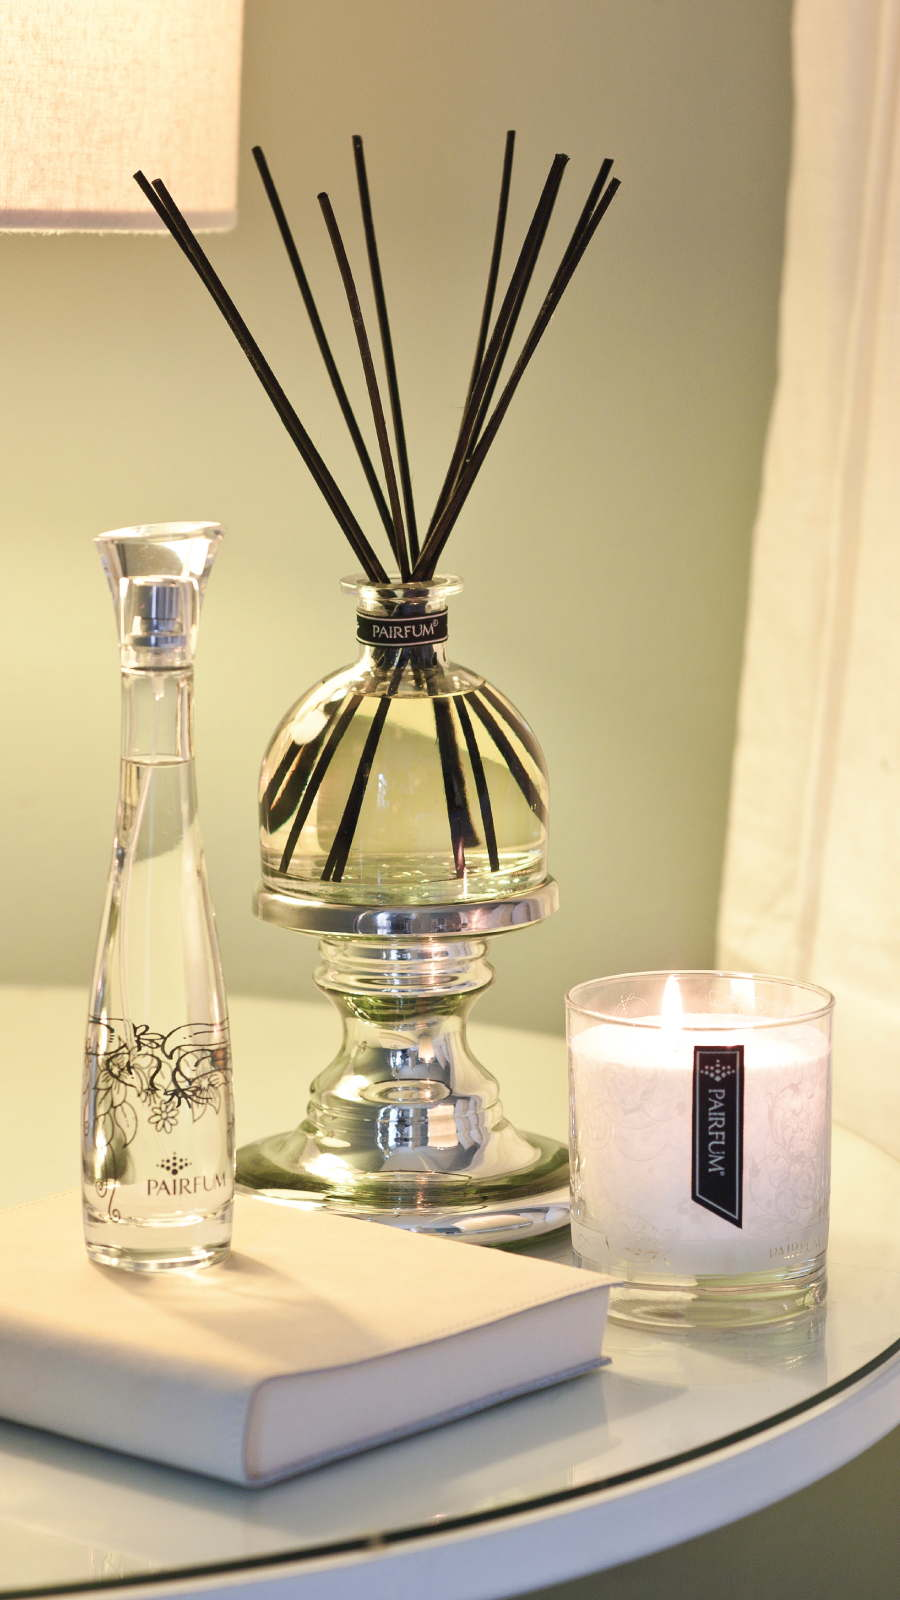 Lifestyle Bedroom Reed Diffuser Room Spray Perfume Candle 9 16